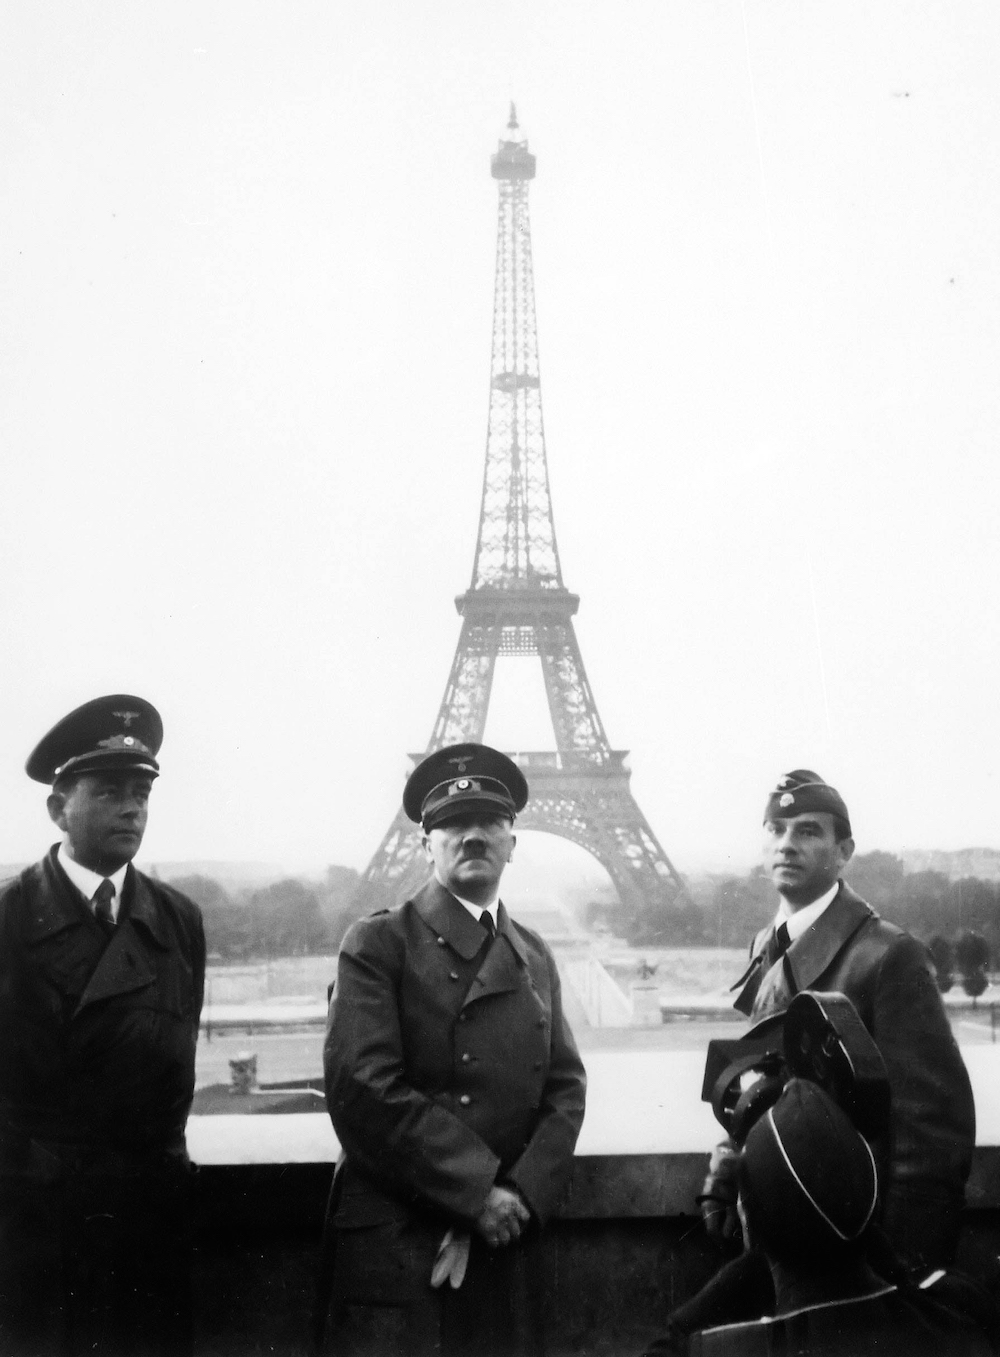 Photograph by Heinrich Hoffmann (seized by the US government after WWII): Adolf Hitler visits Paris with architect Albert Speer (left) and artist Arno Breker (right), June 23, 1940. Courtesy of the  US National Archives.